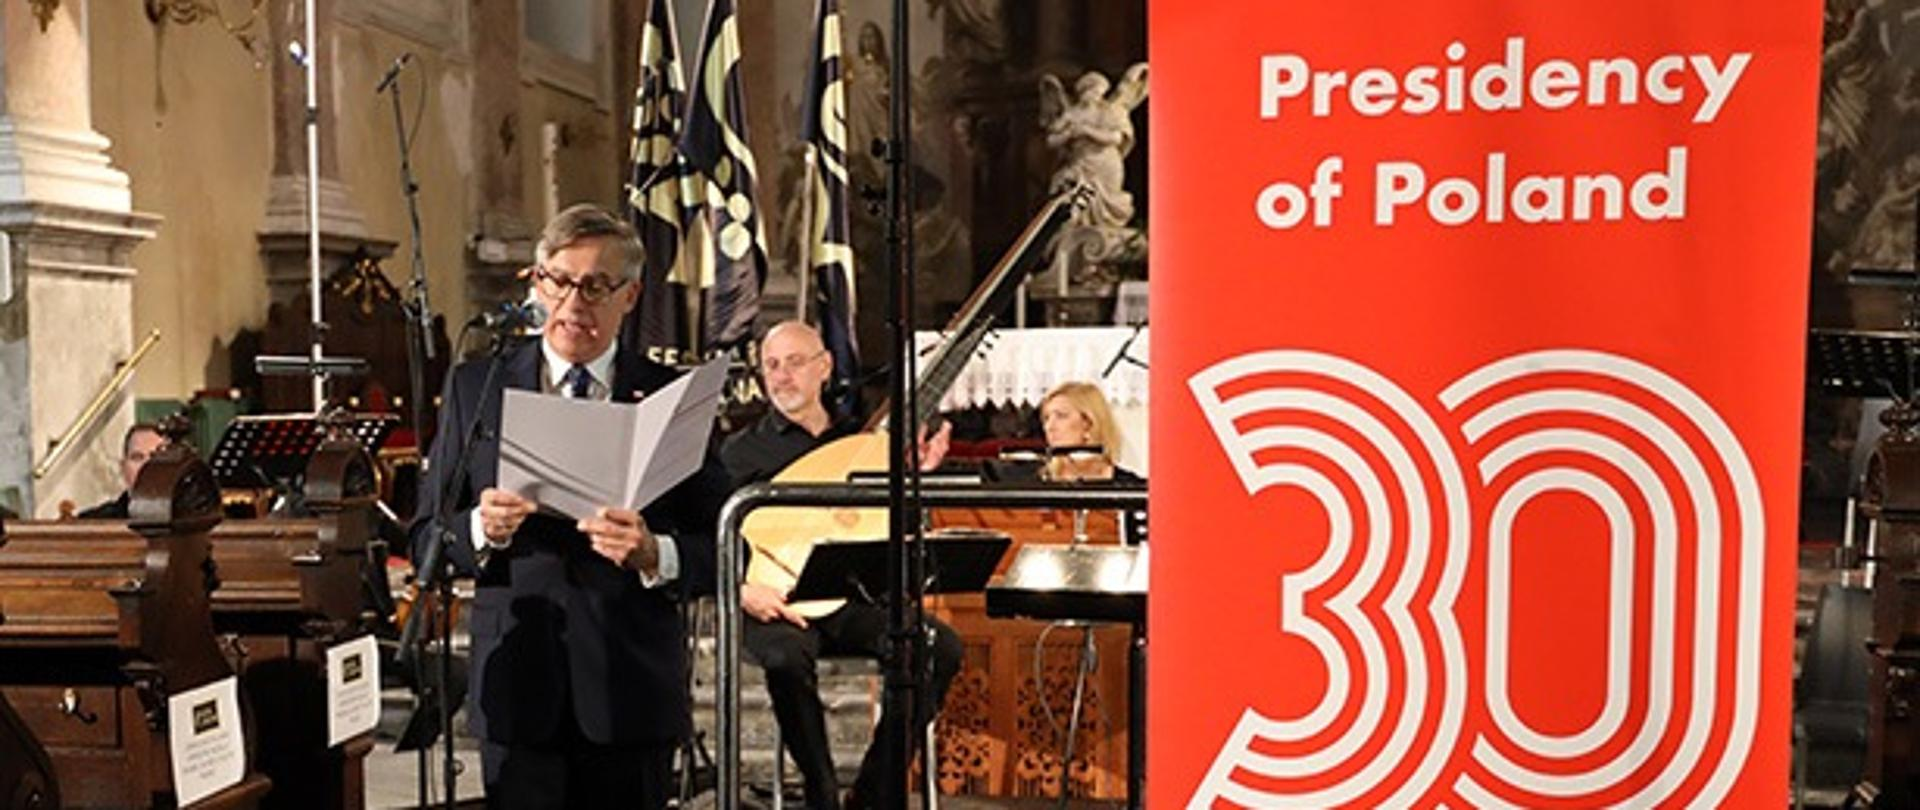 Polish baroque music inaugurates in Ljubljana the Polish presidency of the Visegrad Group